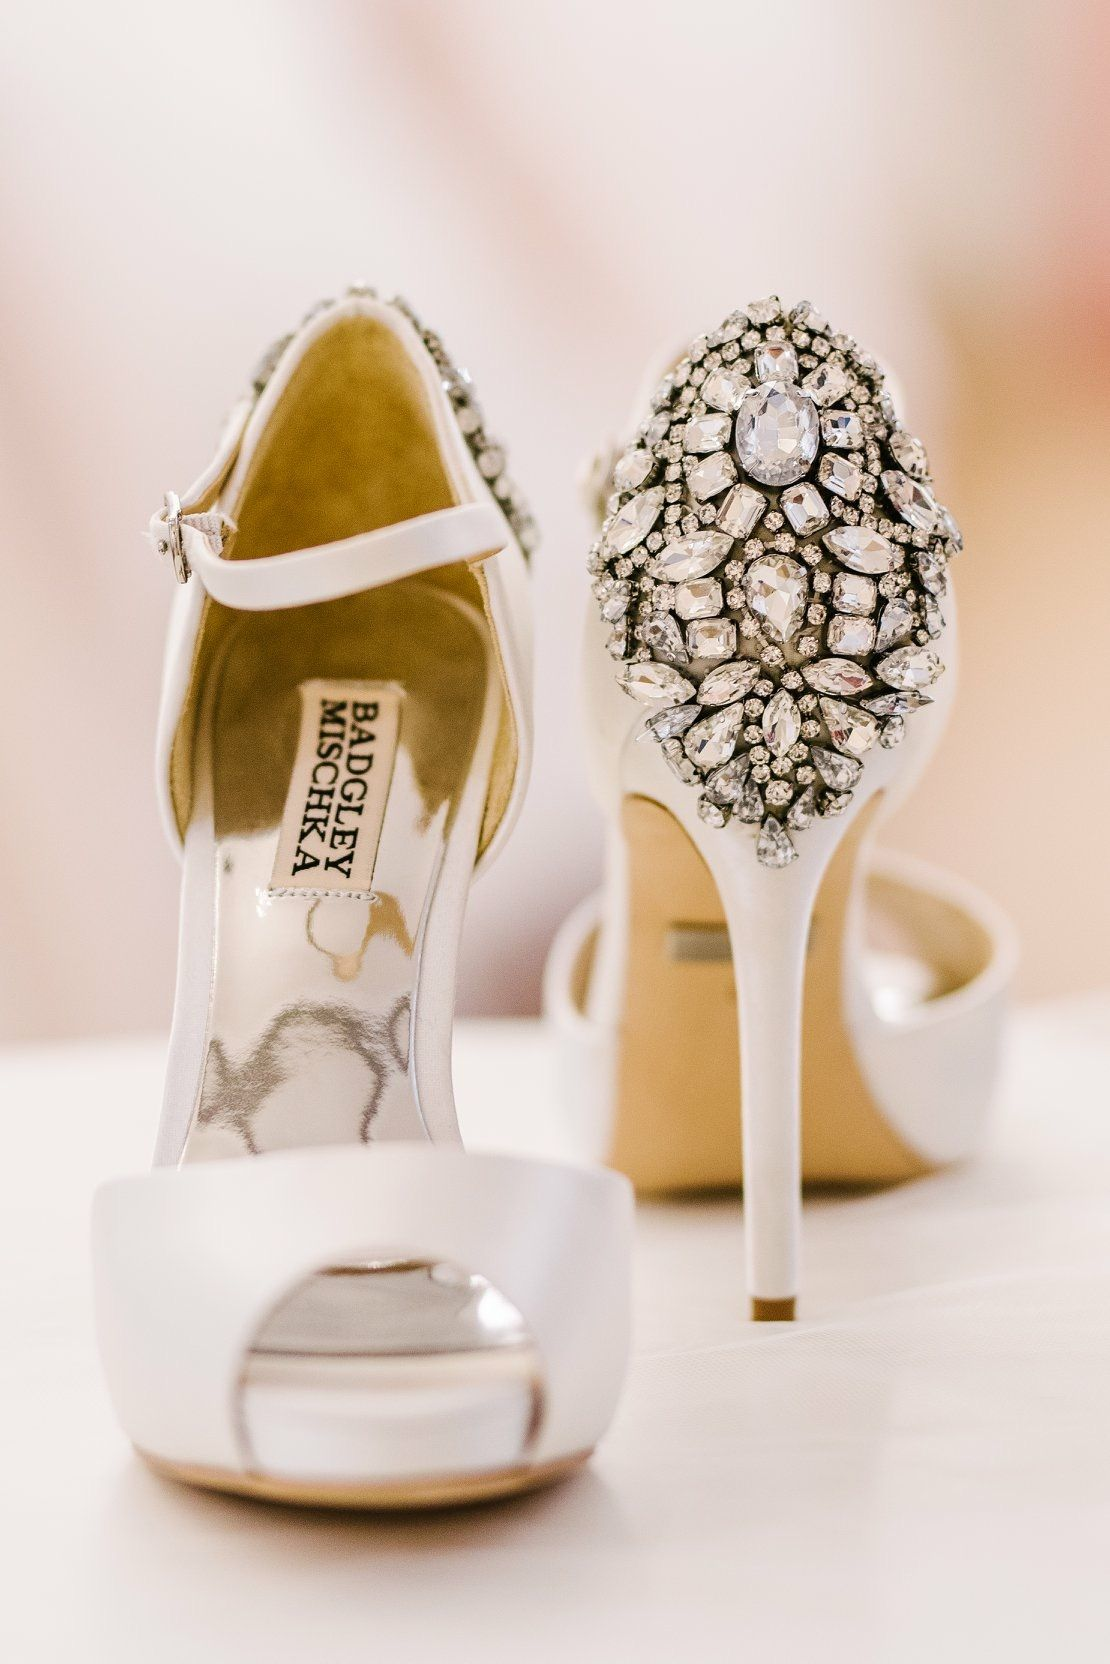 Wedding dress flats  The gorgeous Dawn peep toe wedding shoe by Badgley Mischka are